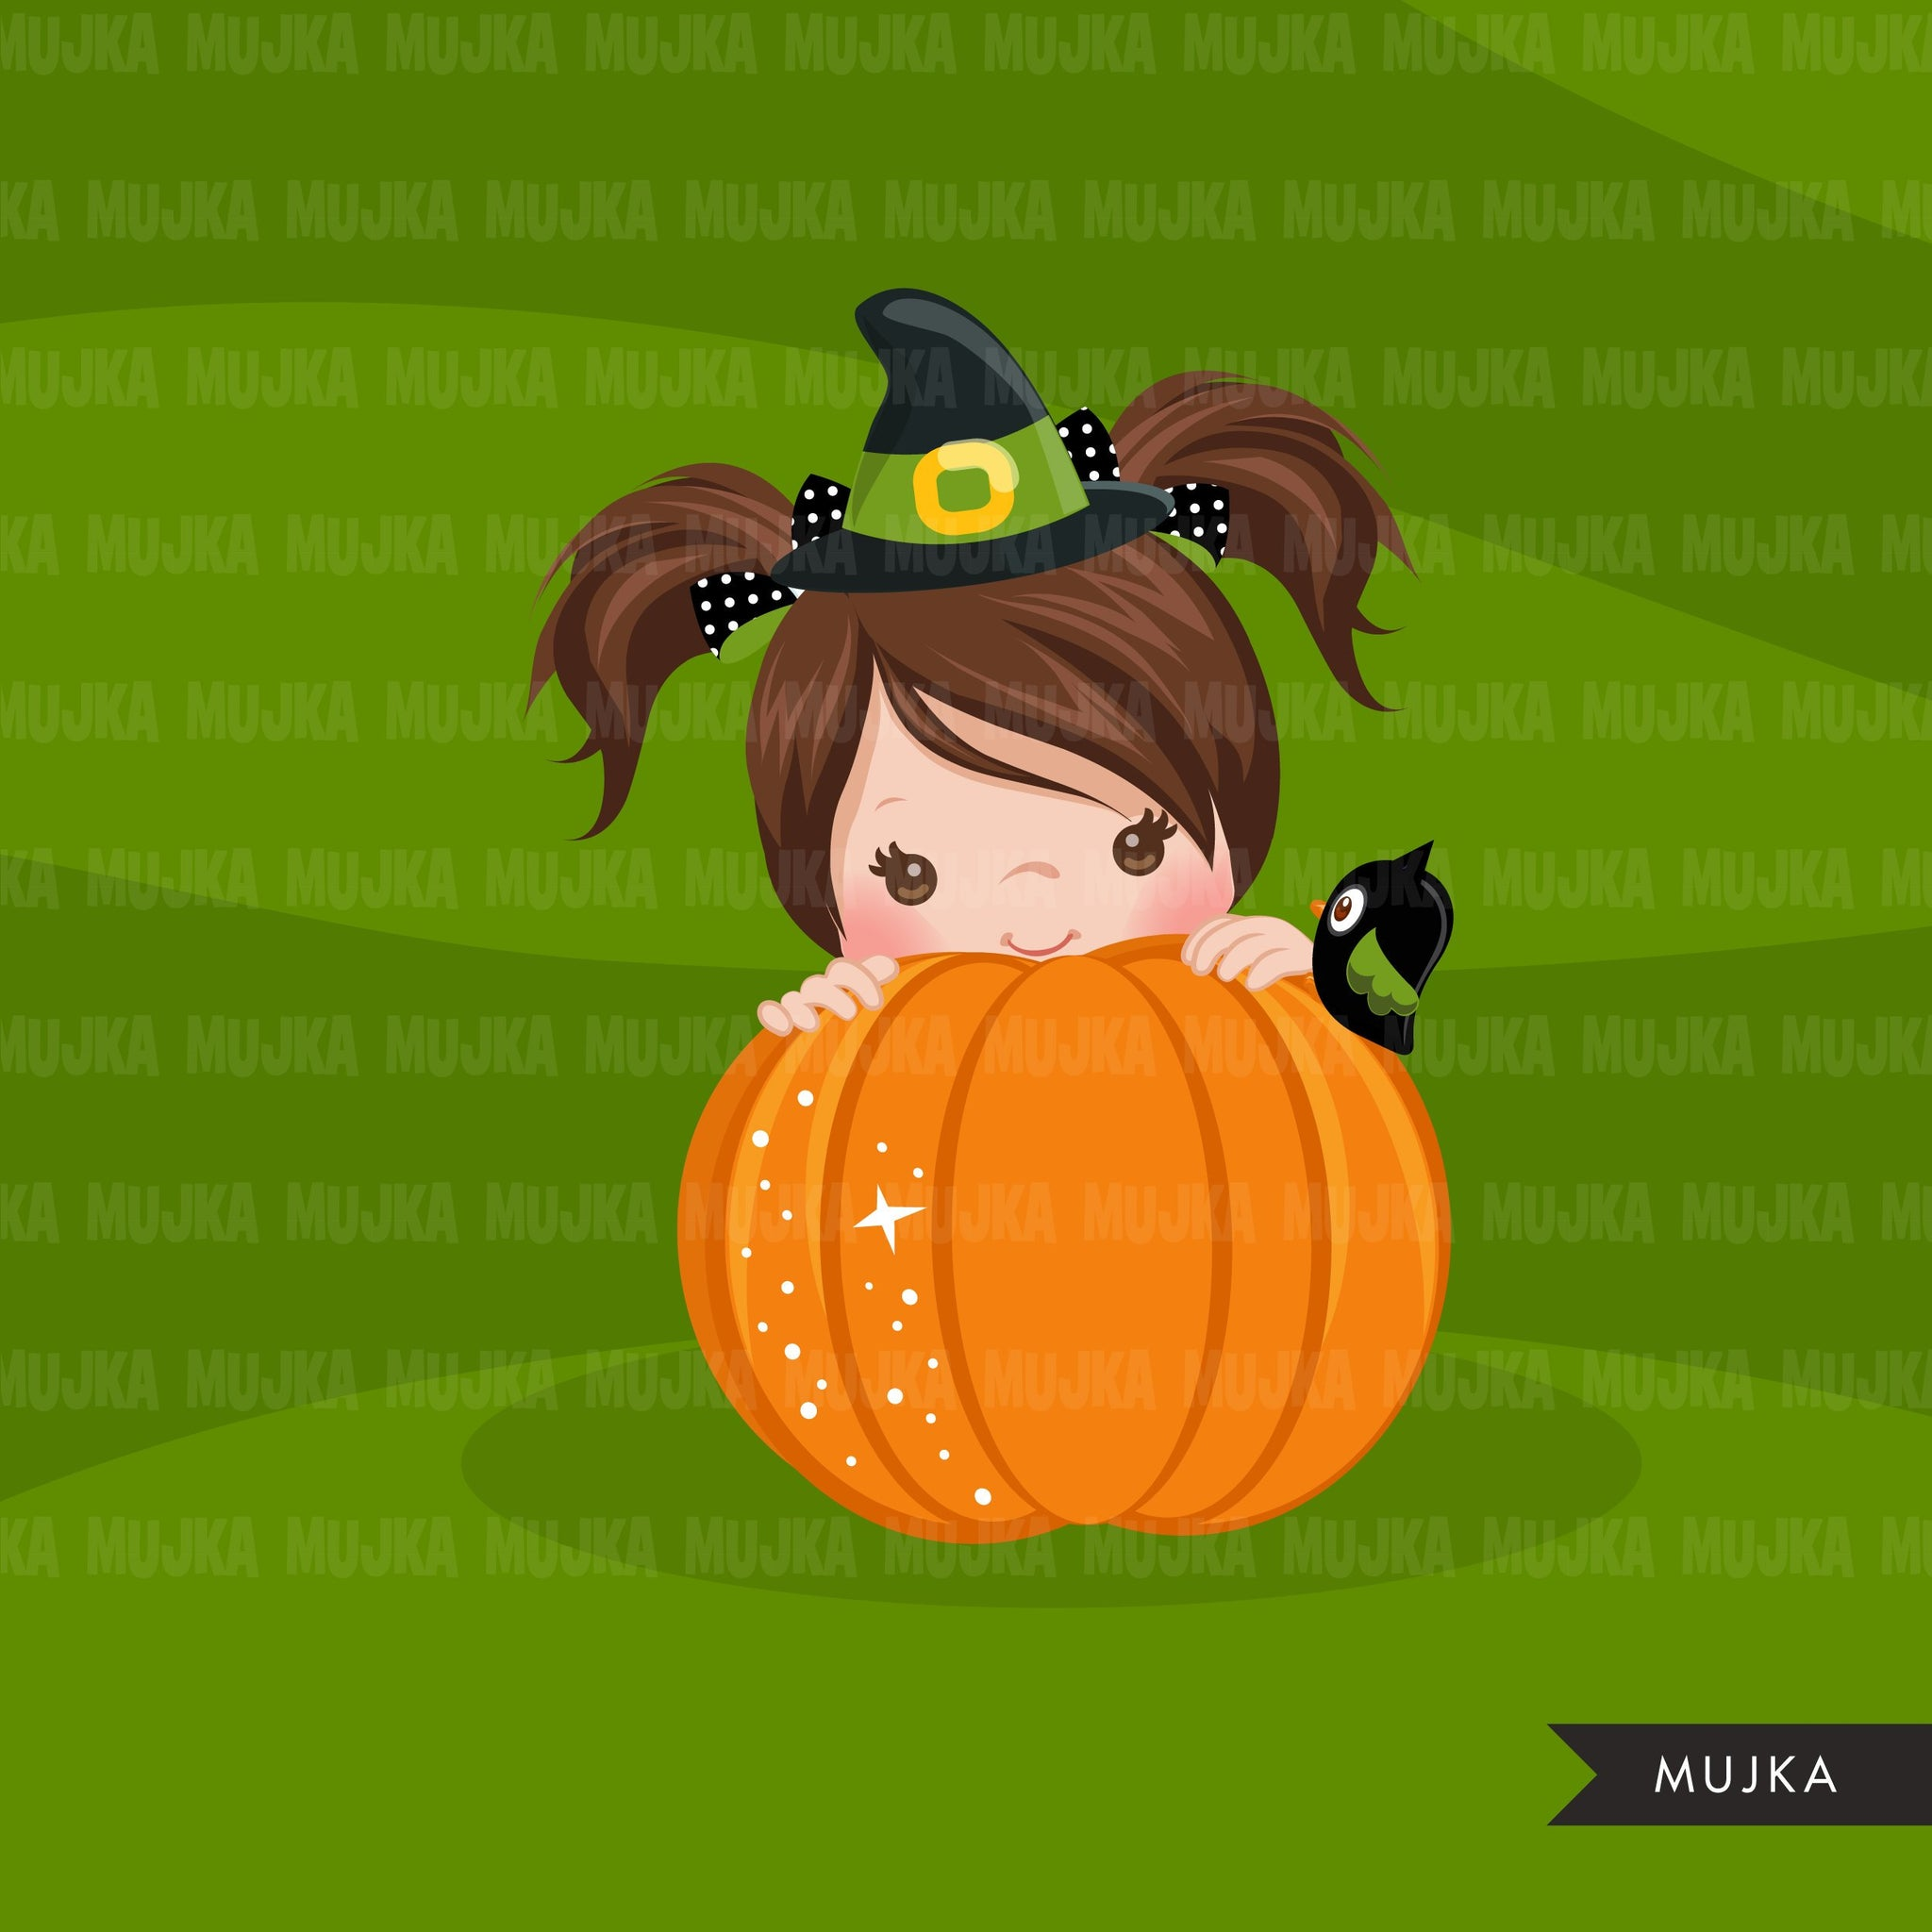 Halloween peek a boo peeking girls clipart.  Cute kids peeking on pumpkin